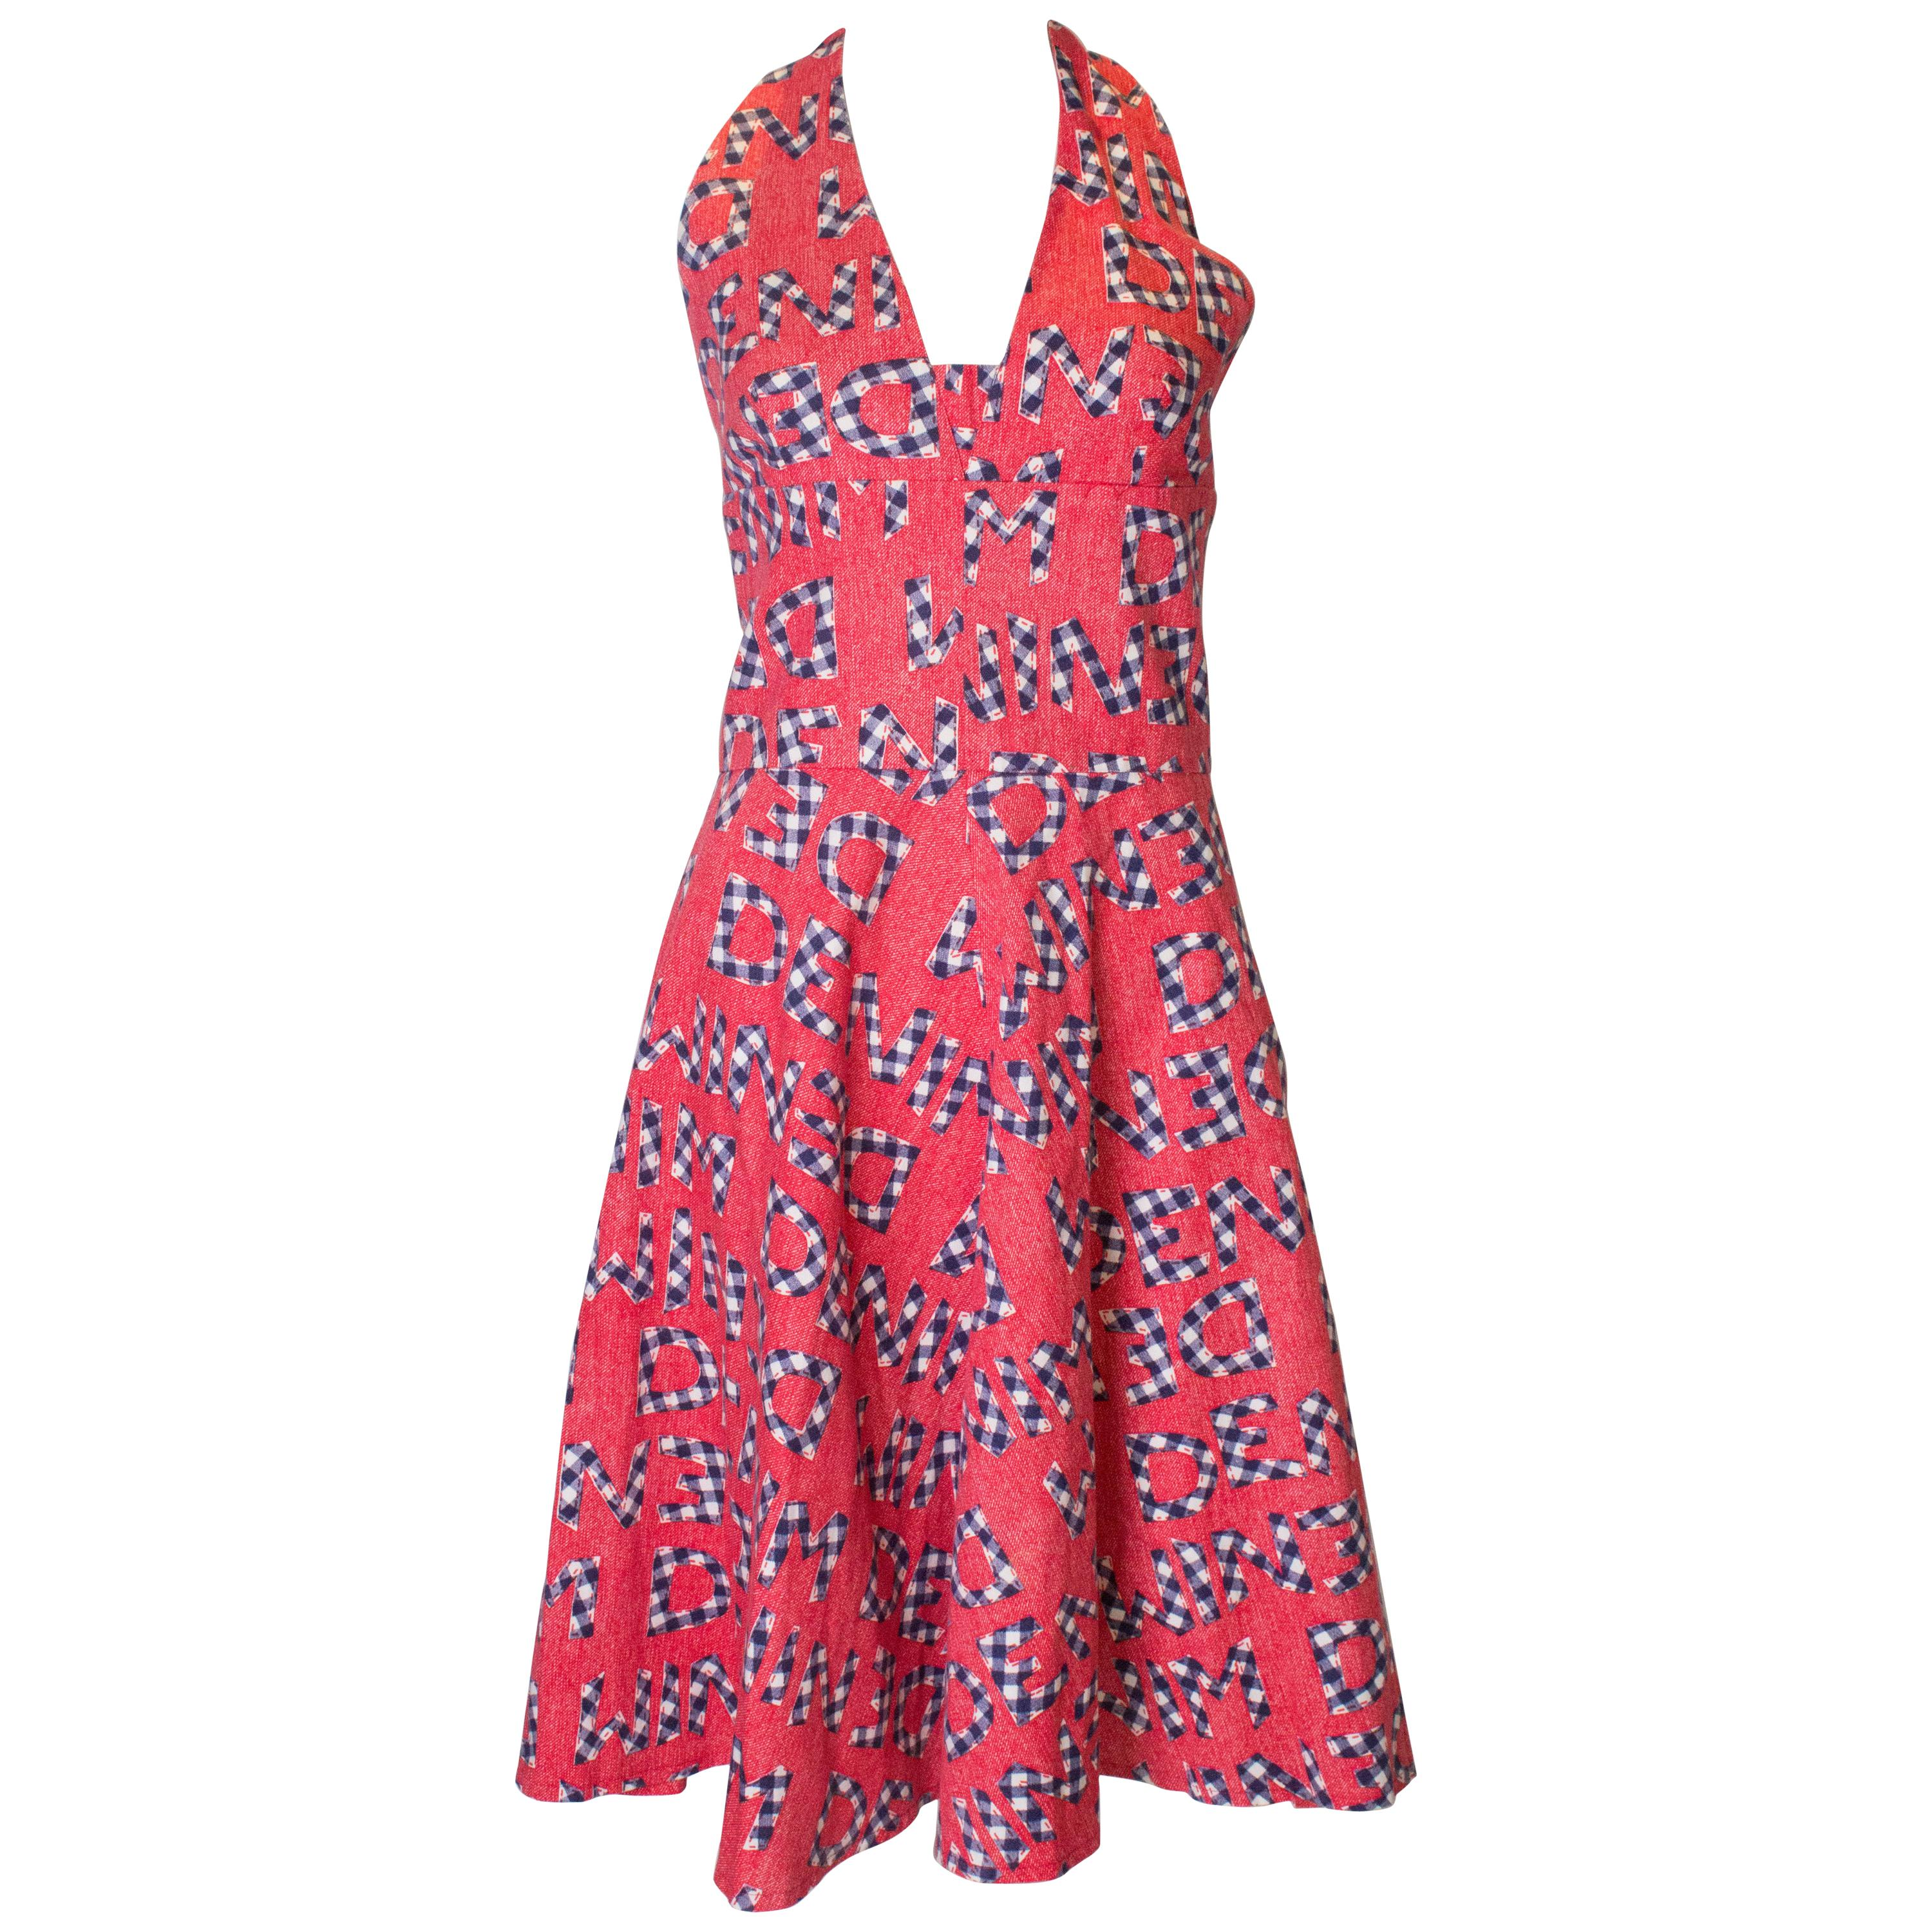 Vintage Susan Small Casual Cotton Summer Dress